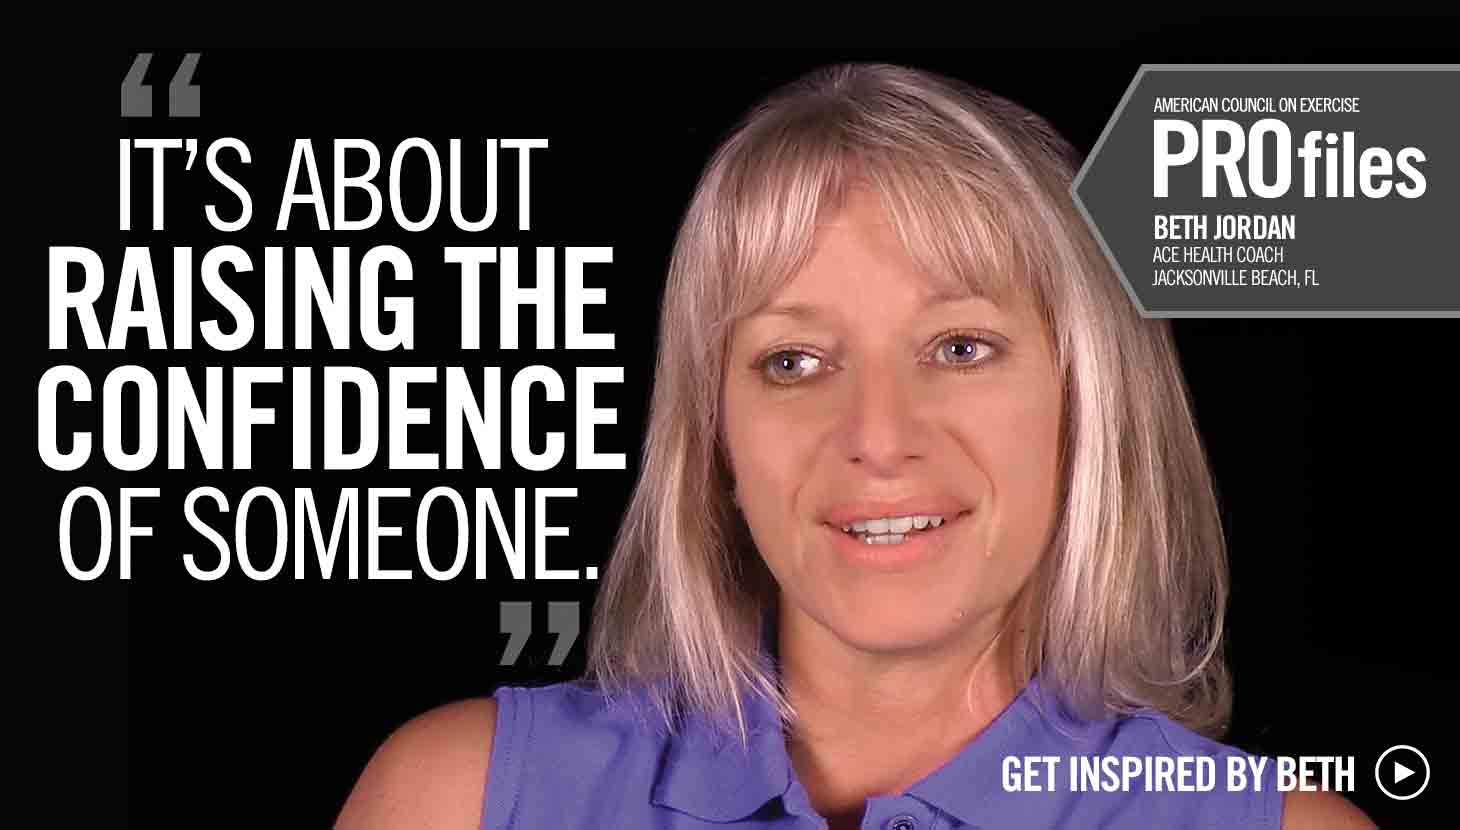 It's About Raising the Confidence of Someone - Beth Jordan